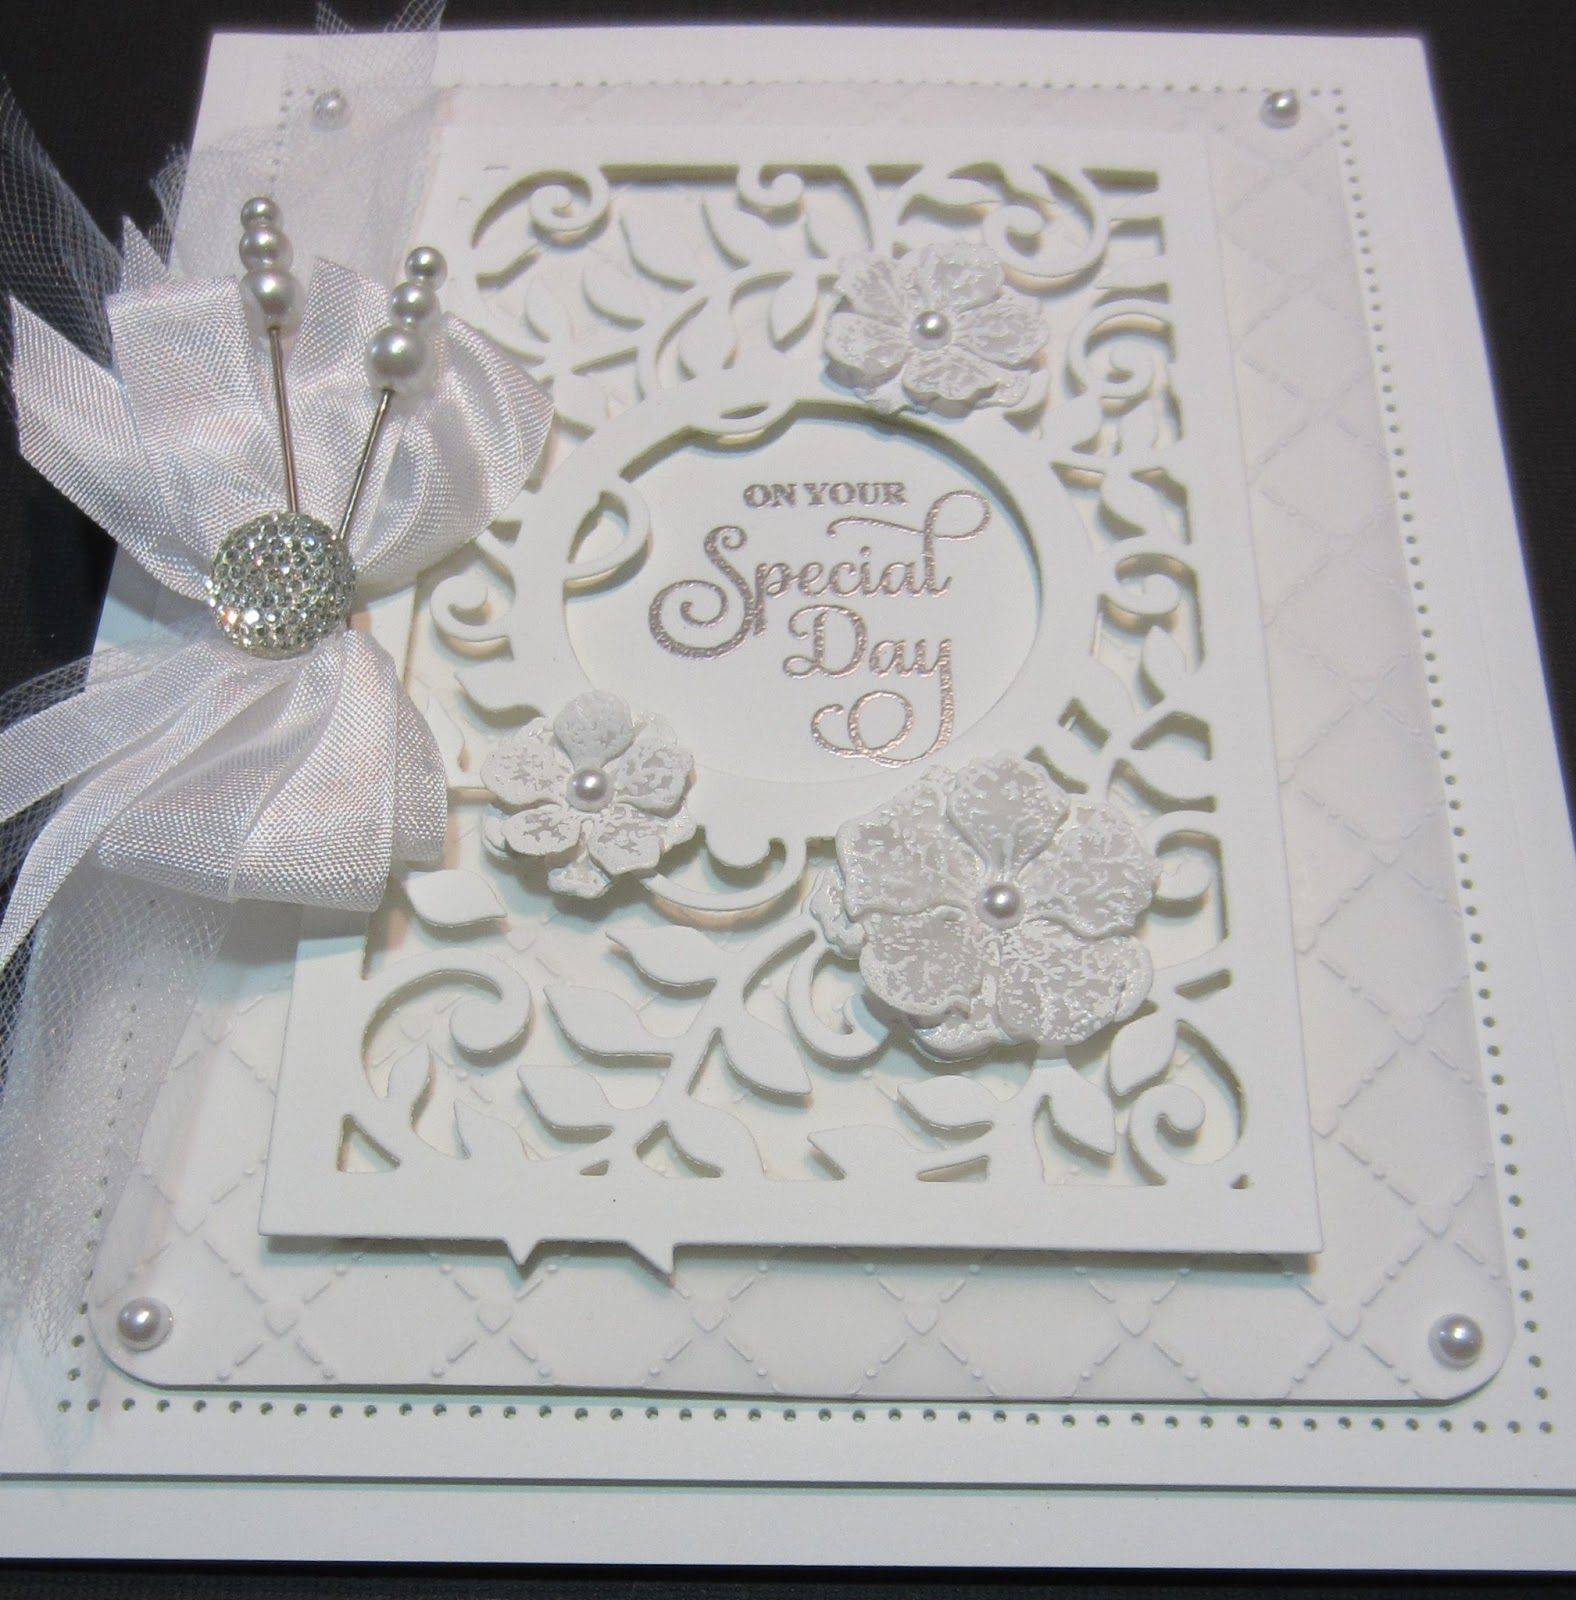 black and white wedding cards pinterest%0A My Wedding invitation